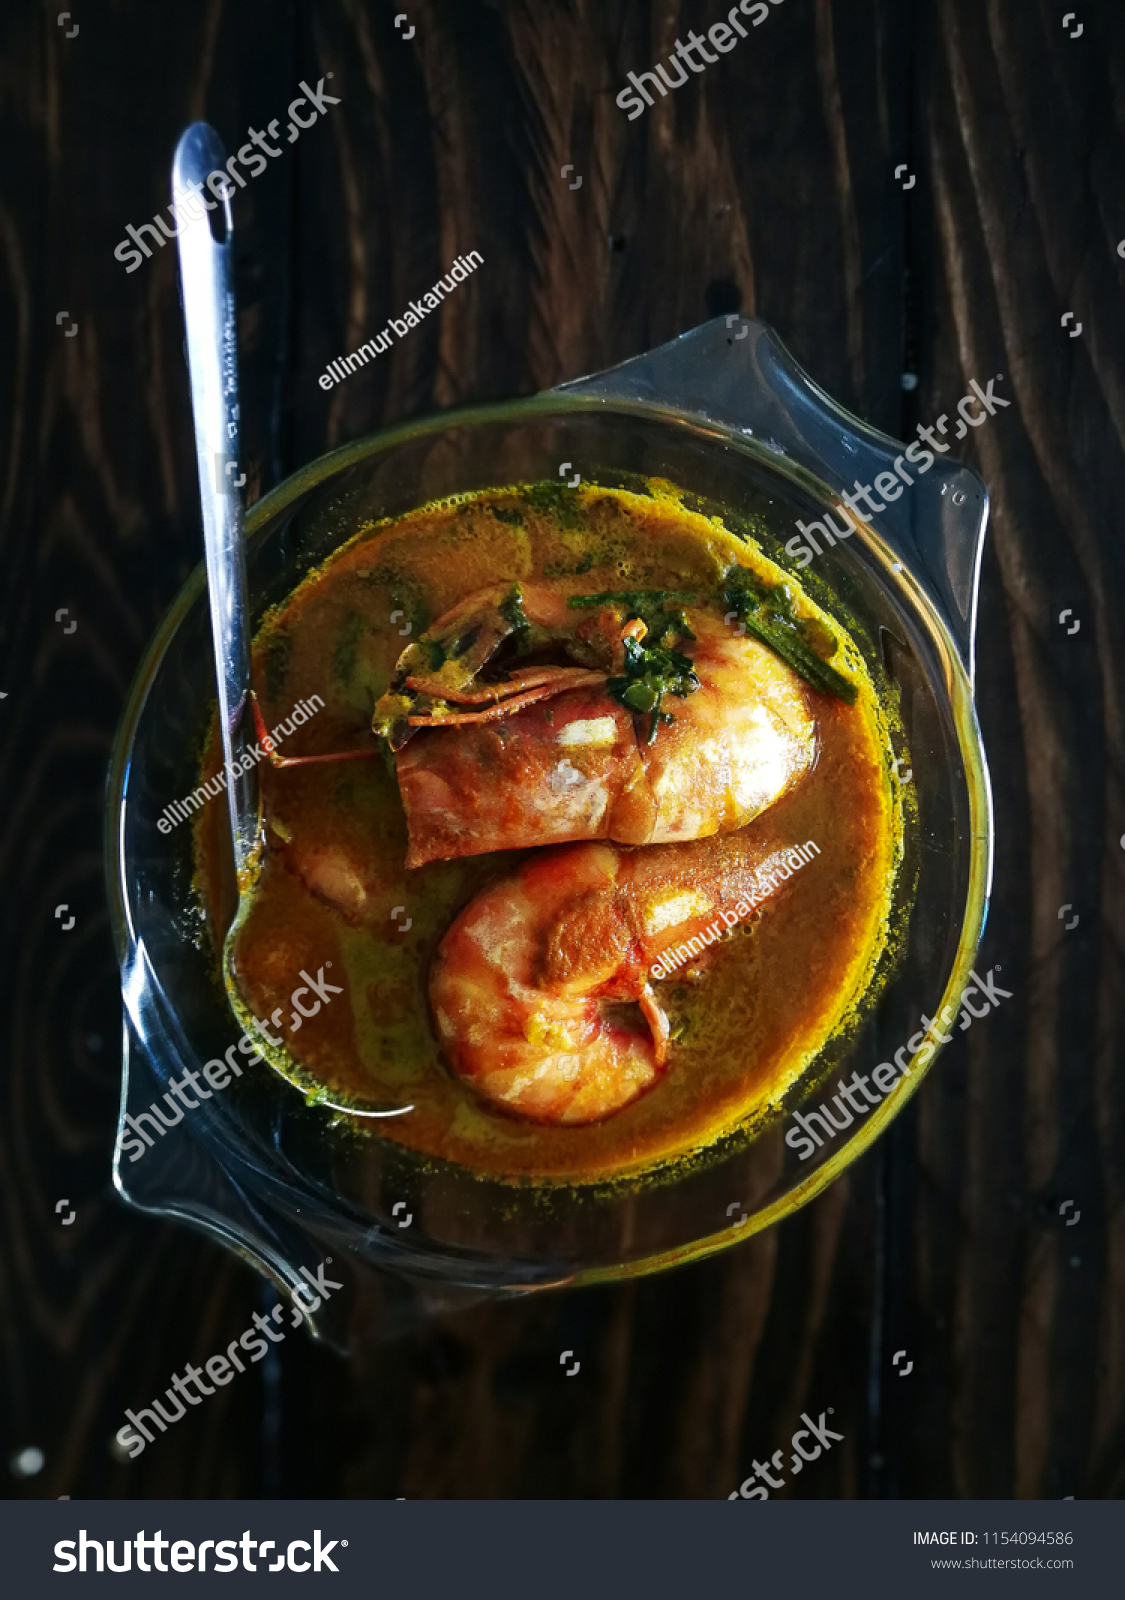 Background Masak Malaysian Food Yellowish Gravy Sauce Prawn Stock Photo Edit Now